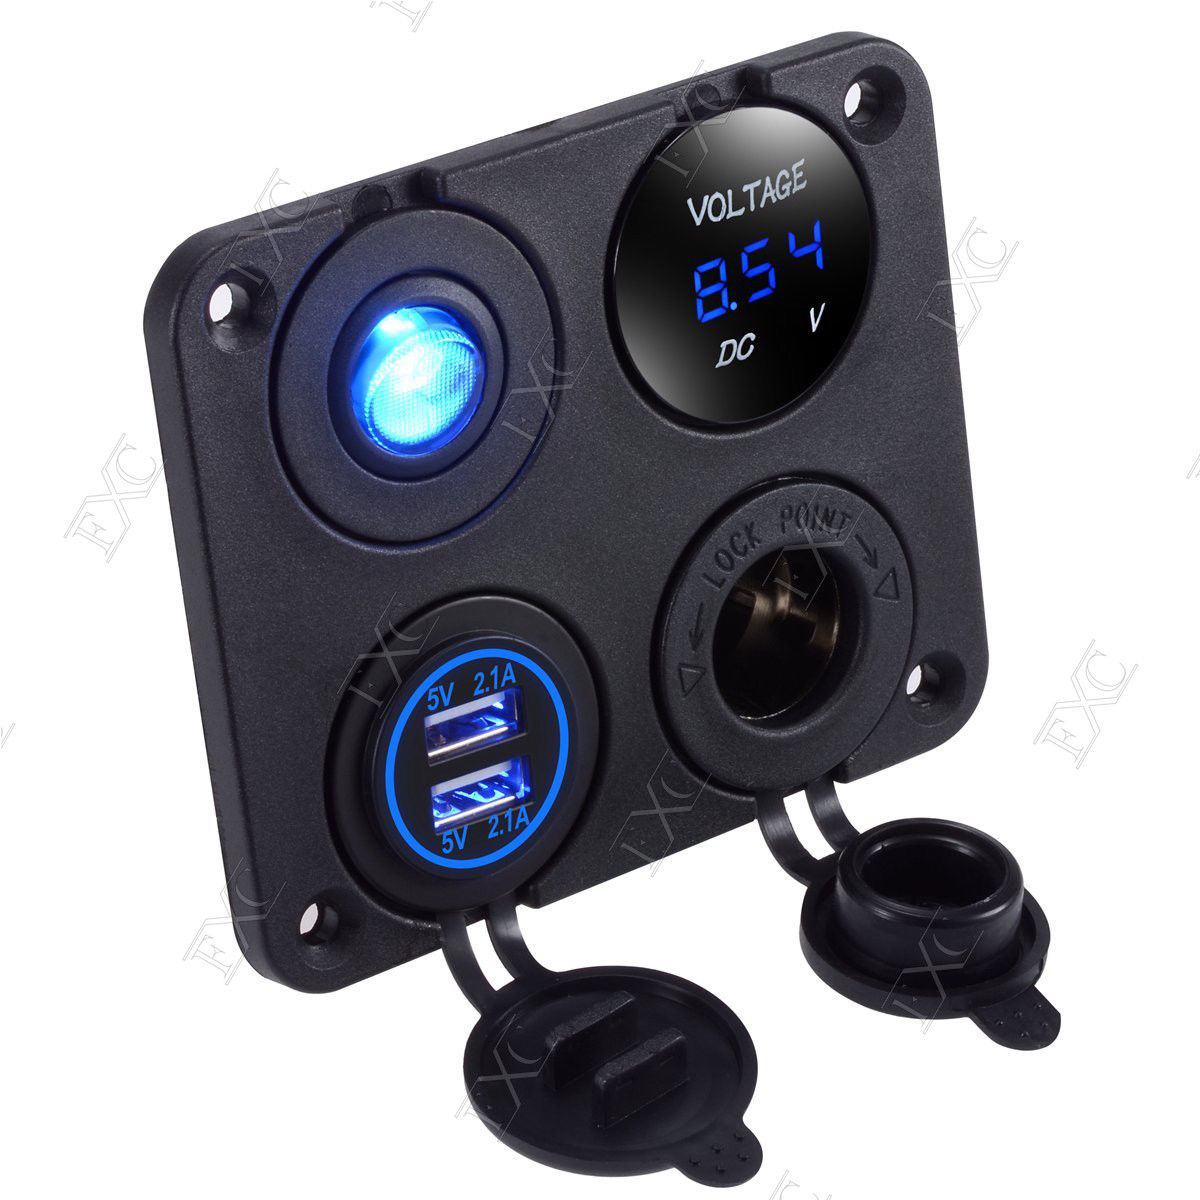 1 15 new 12v voltmeter usb lighter socket switch ght31 uncle wiener's  at creativeand.co